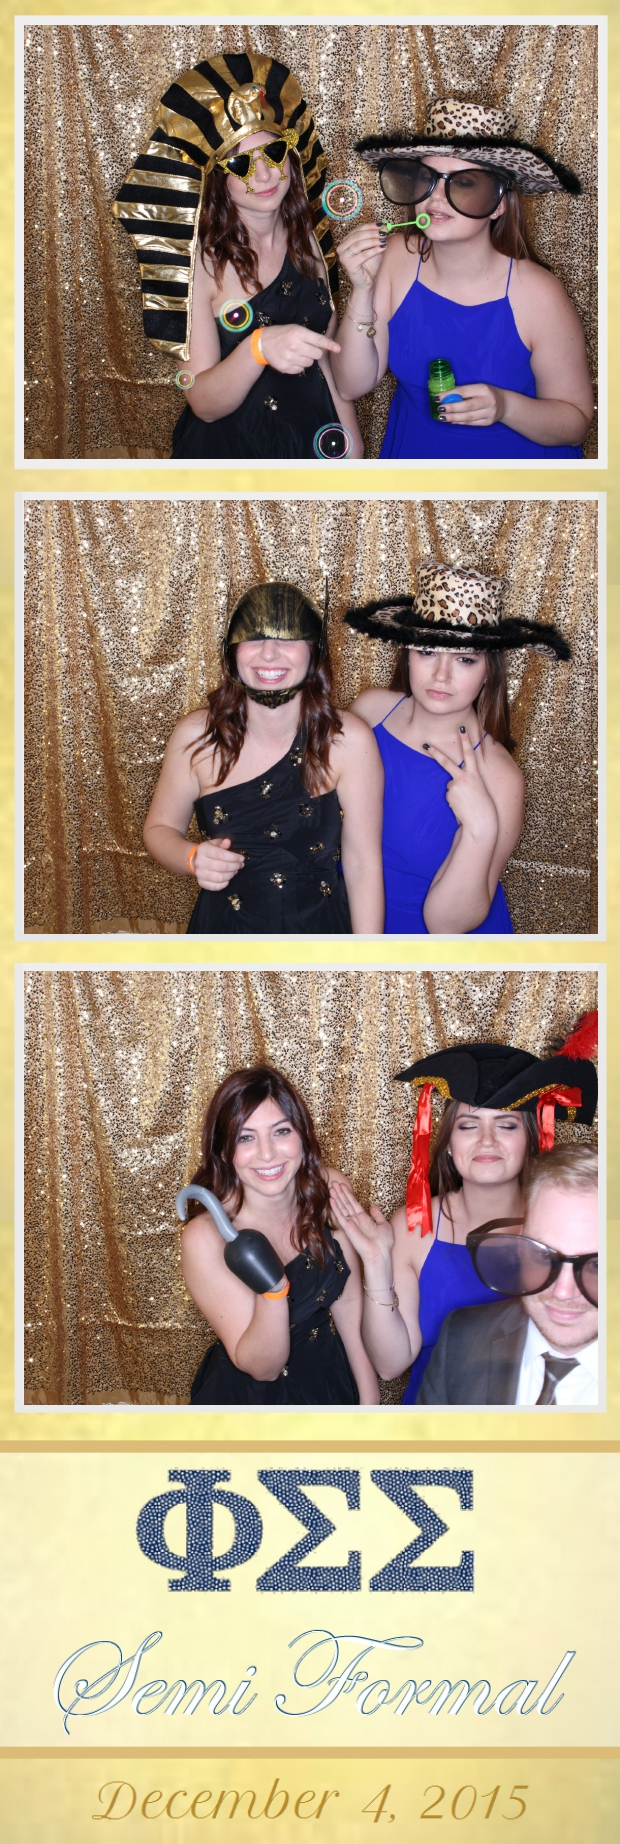 Guest House Events Photo Booth Phi Sigma Sigma Semi Formal (14).jpg